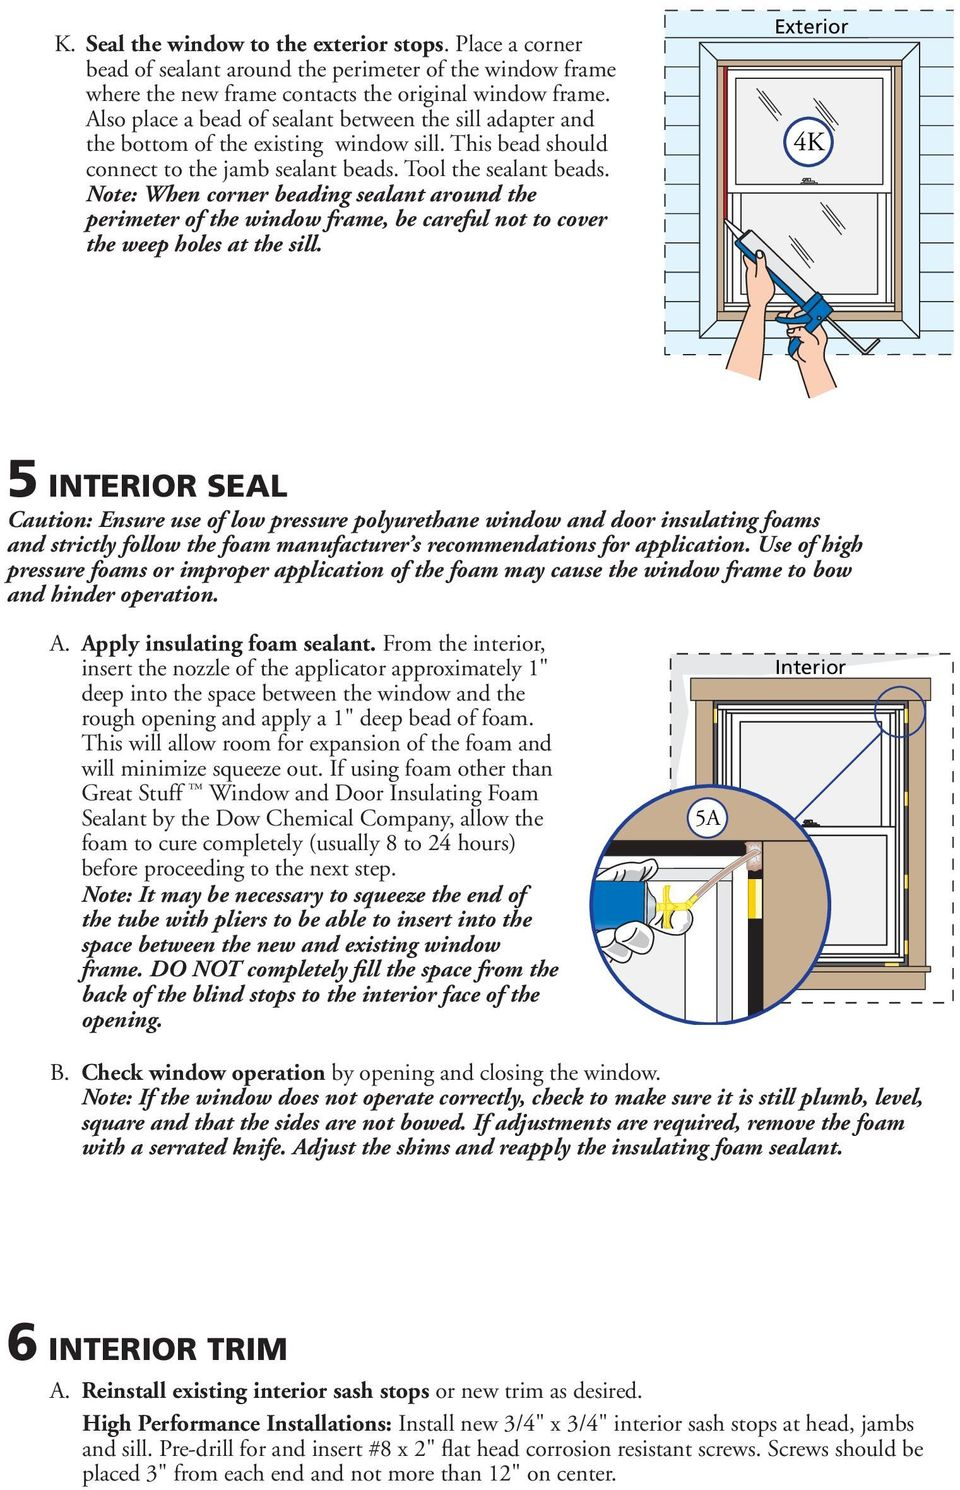 Note: When corner beading sealant around the perimeter of the window frame, be careful not to cover the weep holes at the sill.